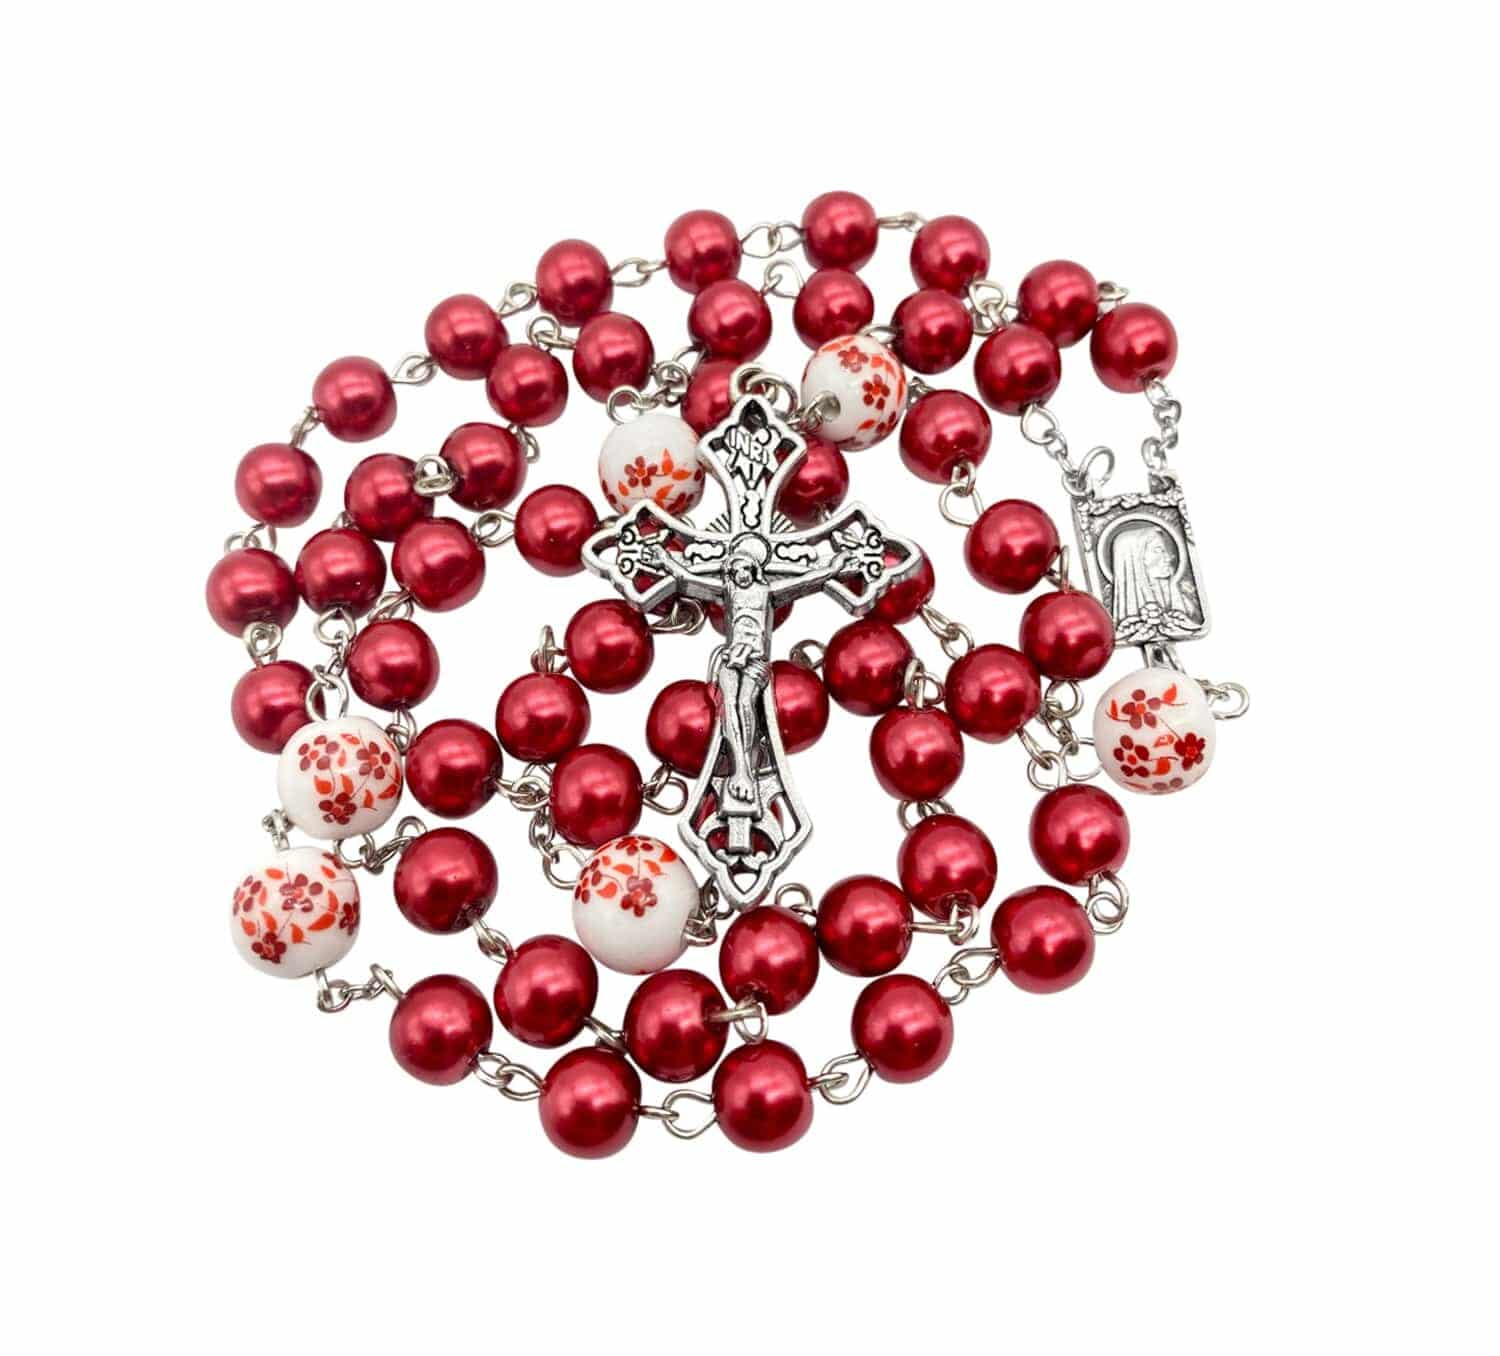 Why is Catholic Rosary an Essential Part of a Catholic Believer's Life?